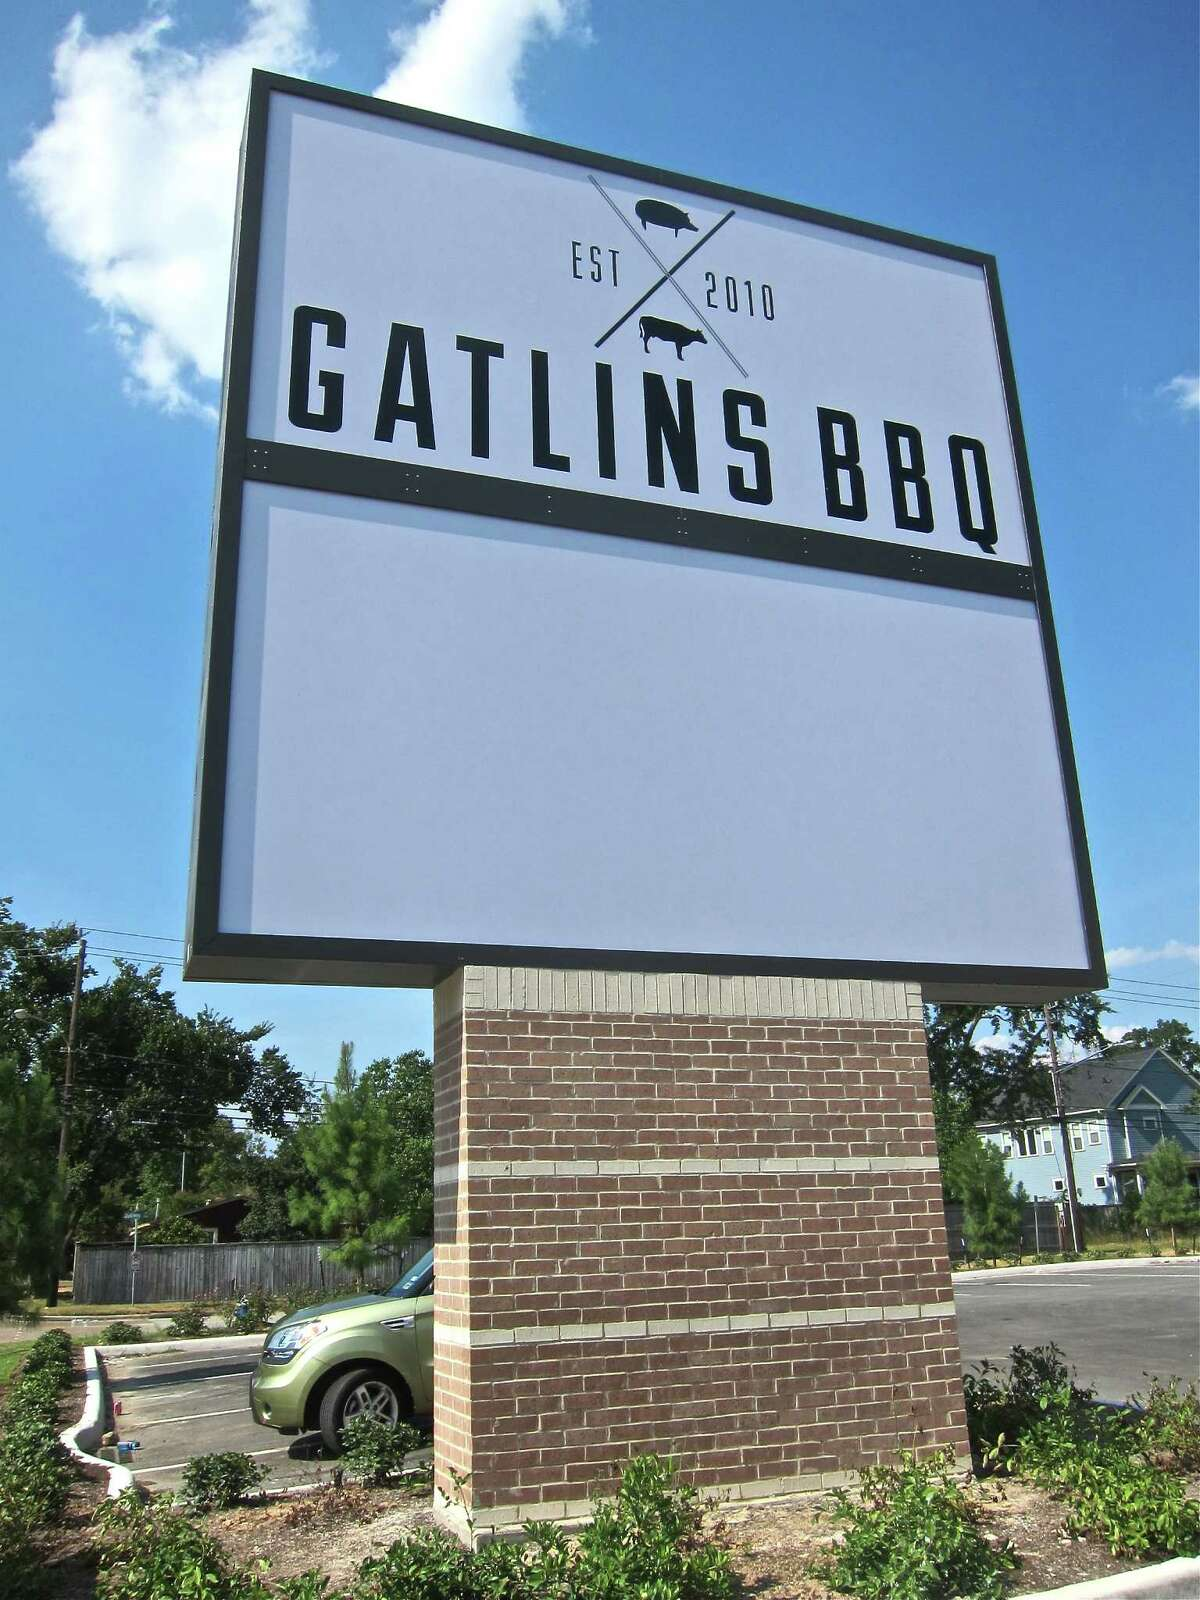 Greg Gatlin will open his Gatlin's Barbecue in a new location on Ella Boulevard over Labor Day weekend.